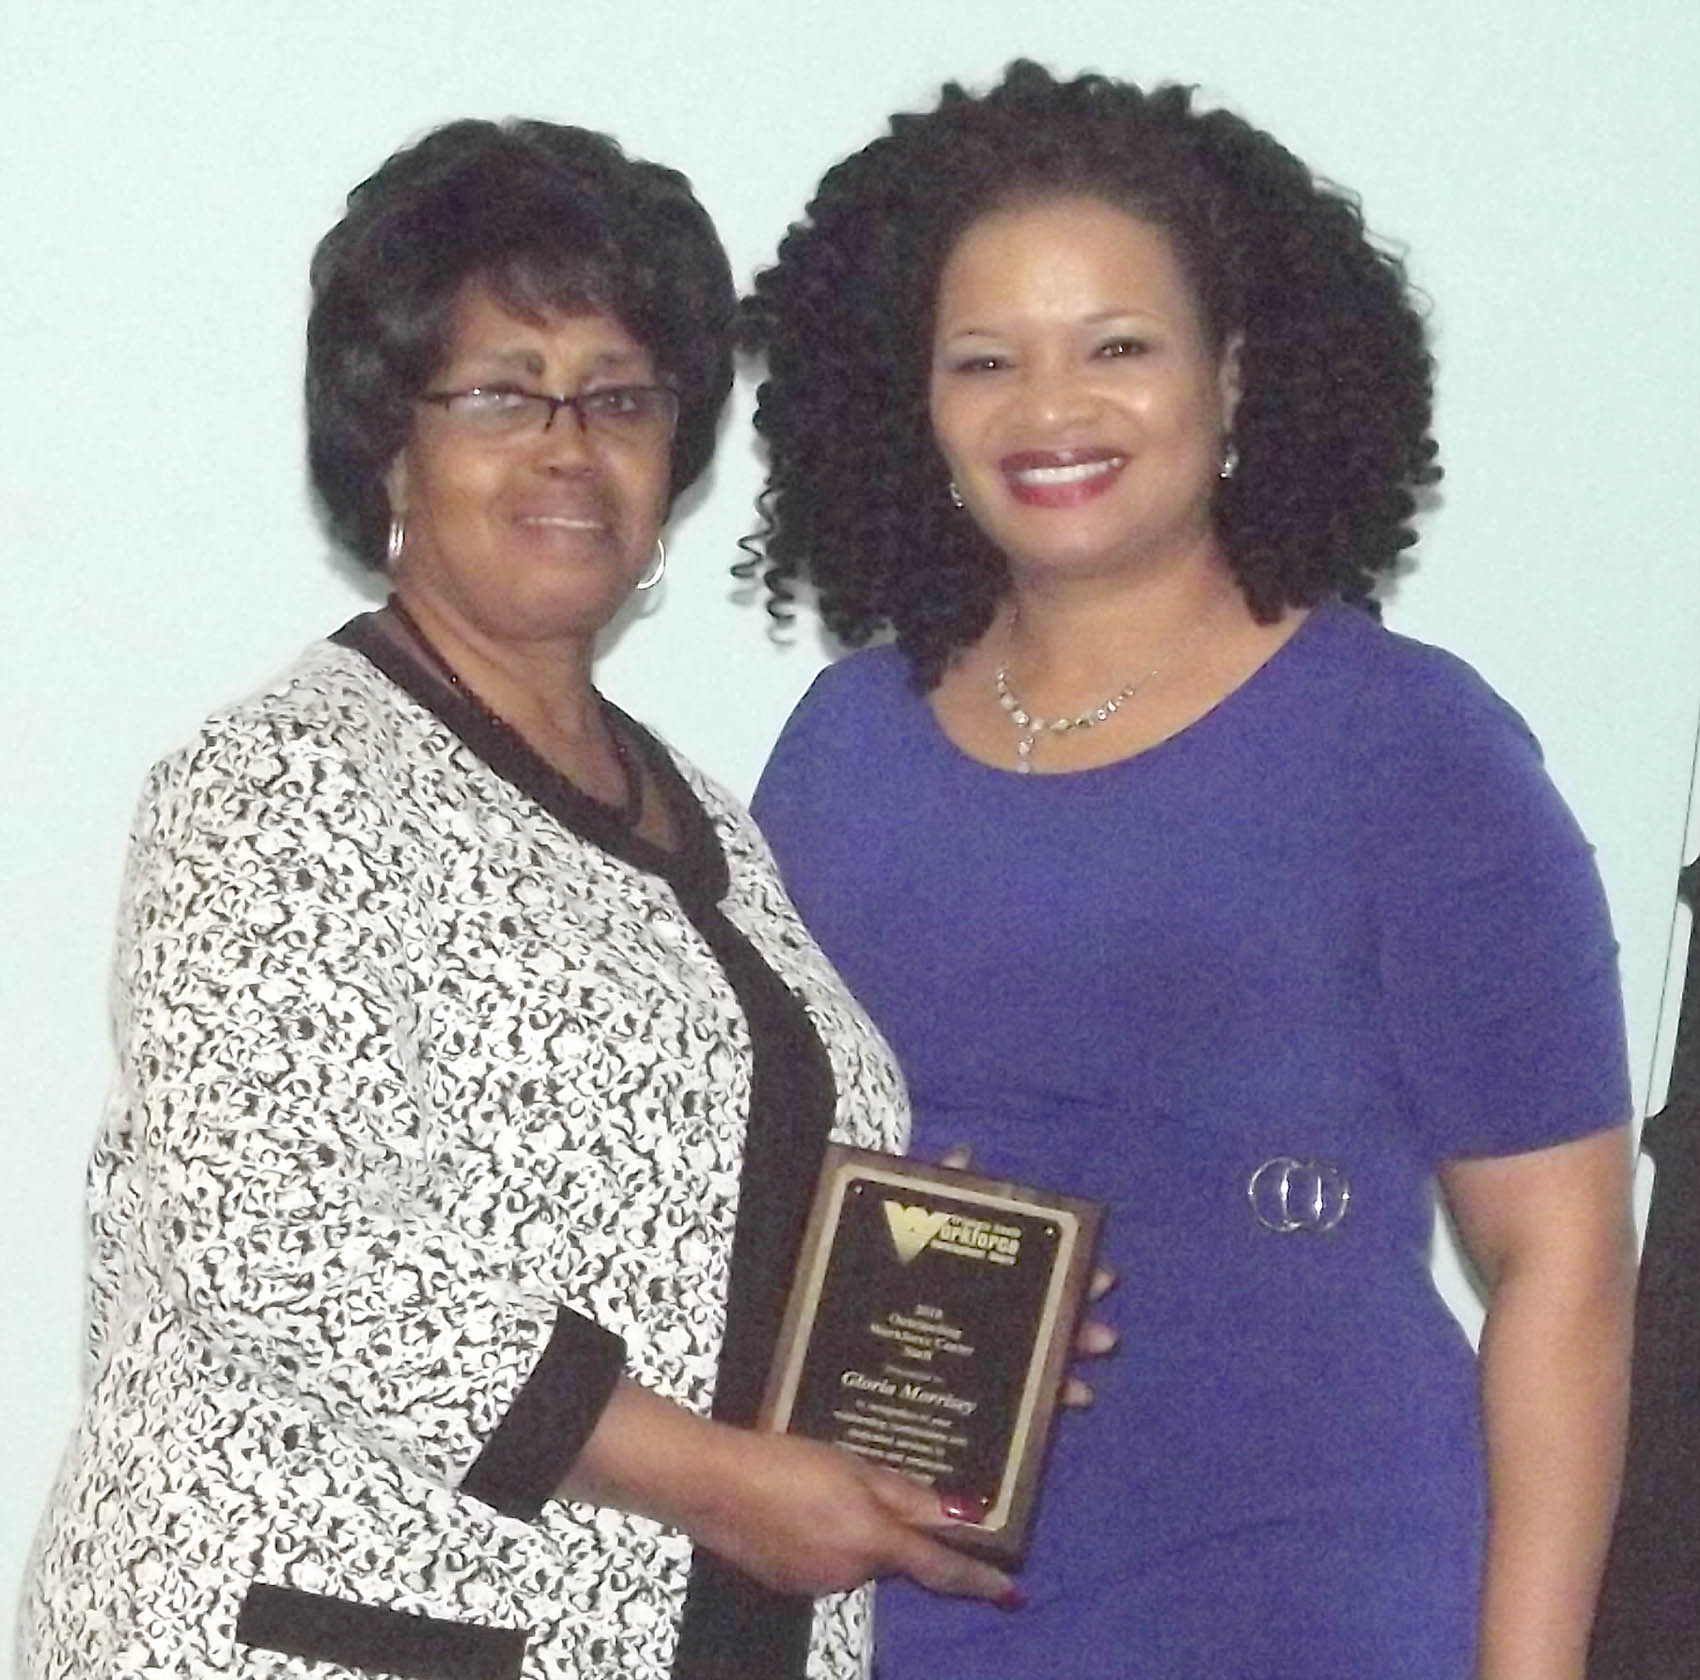 TSWDB holds awards banquet